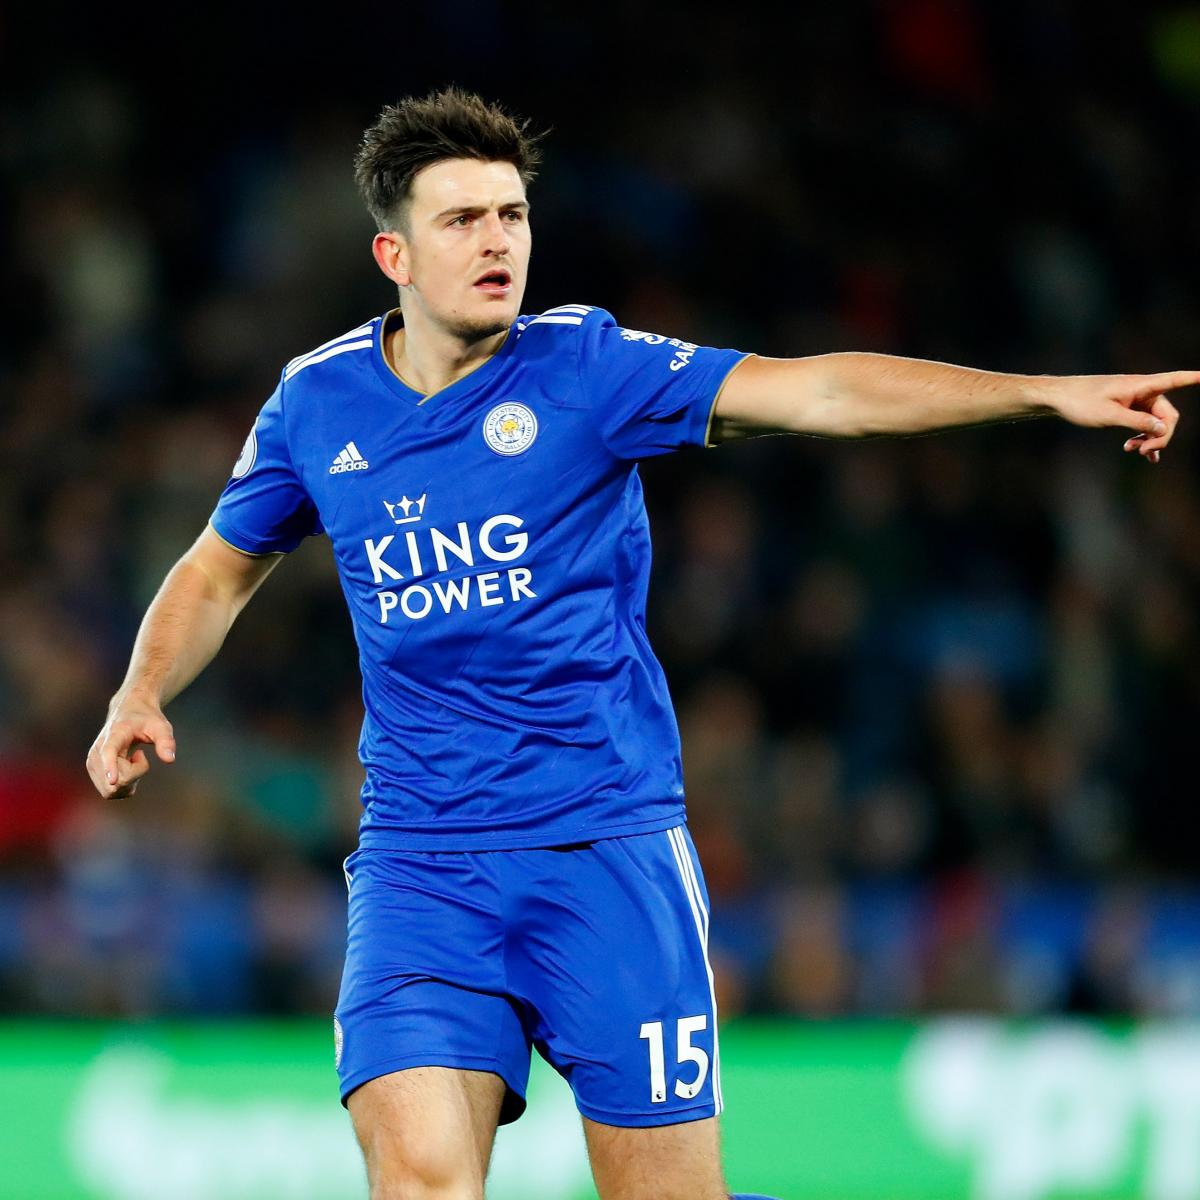 Manchester United Reportedly Ready to Make £60M Harry Maguire Bid in January